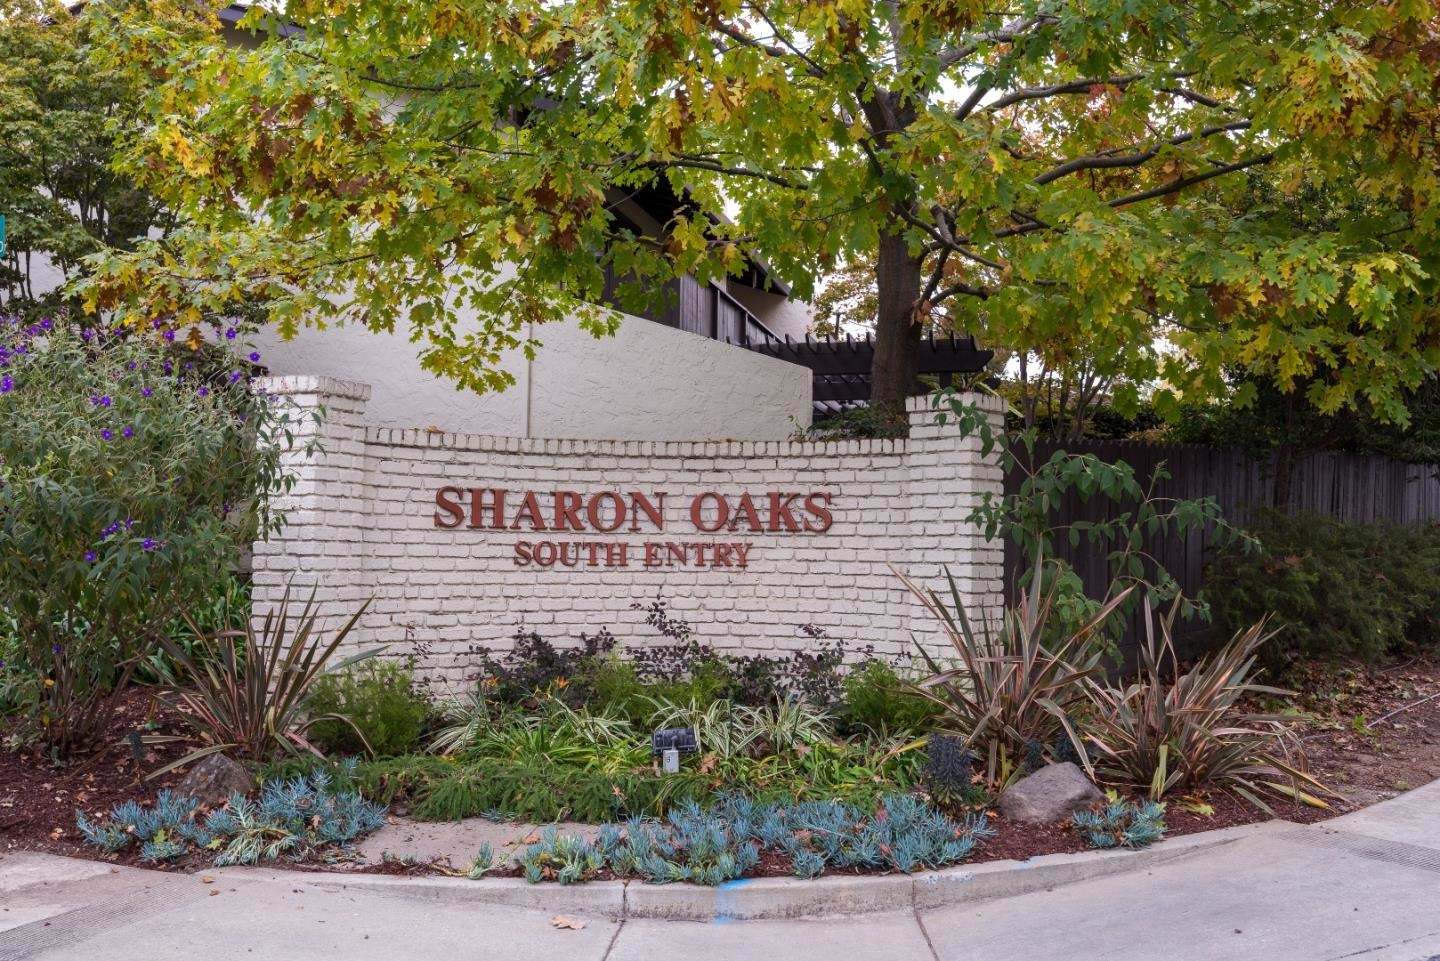 Photo for 2473 Sharon Oaks DR, MENLO PARK, CA 94025 (MLS # ML81820058)